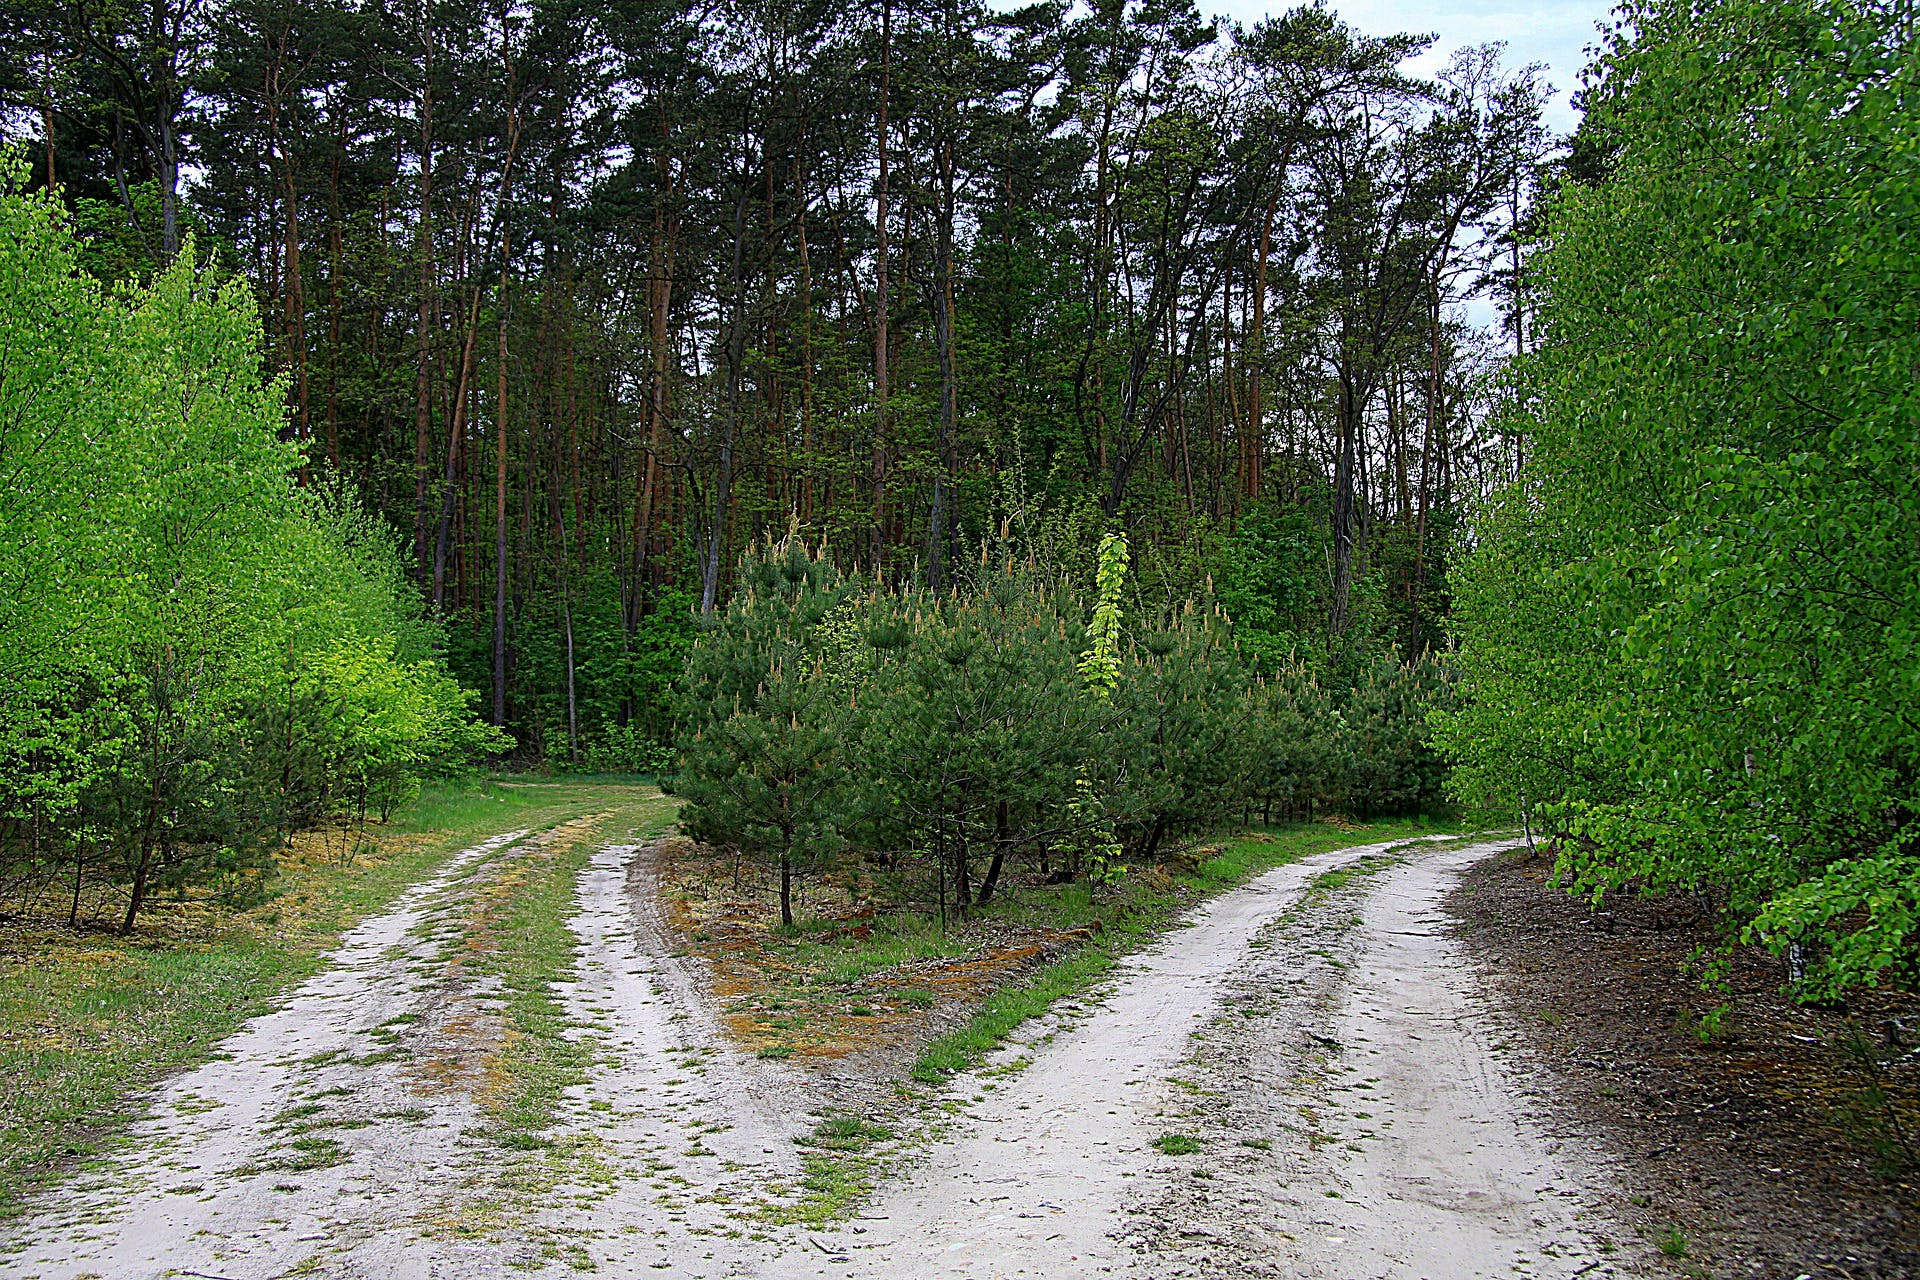 forest-road-5228673_1920.jpg